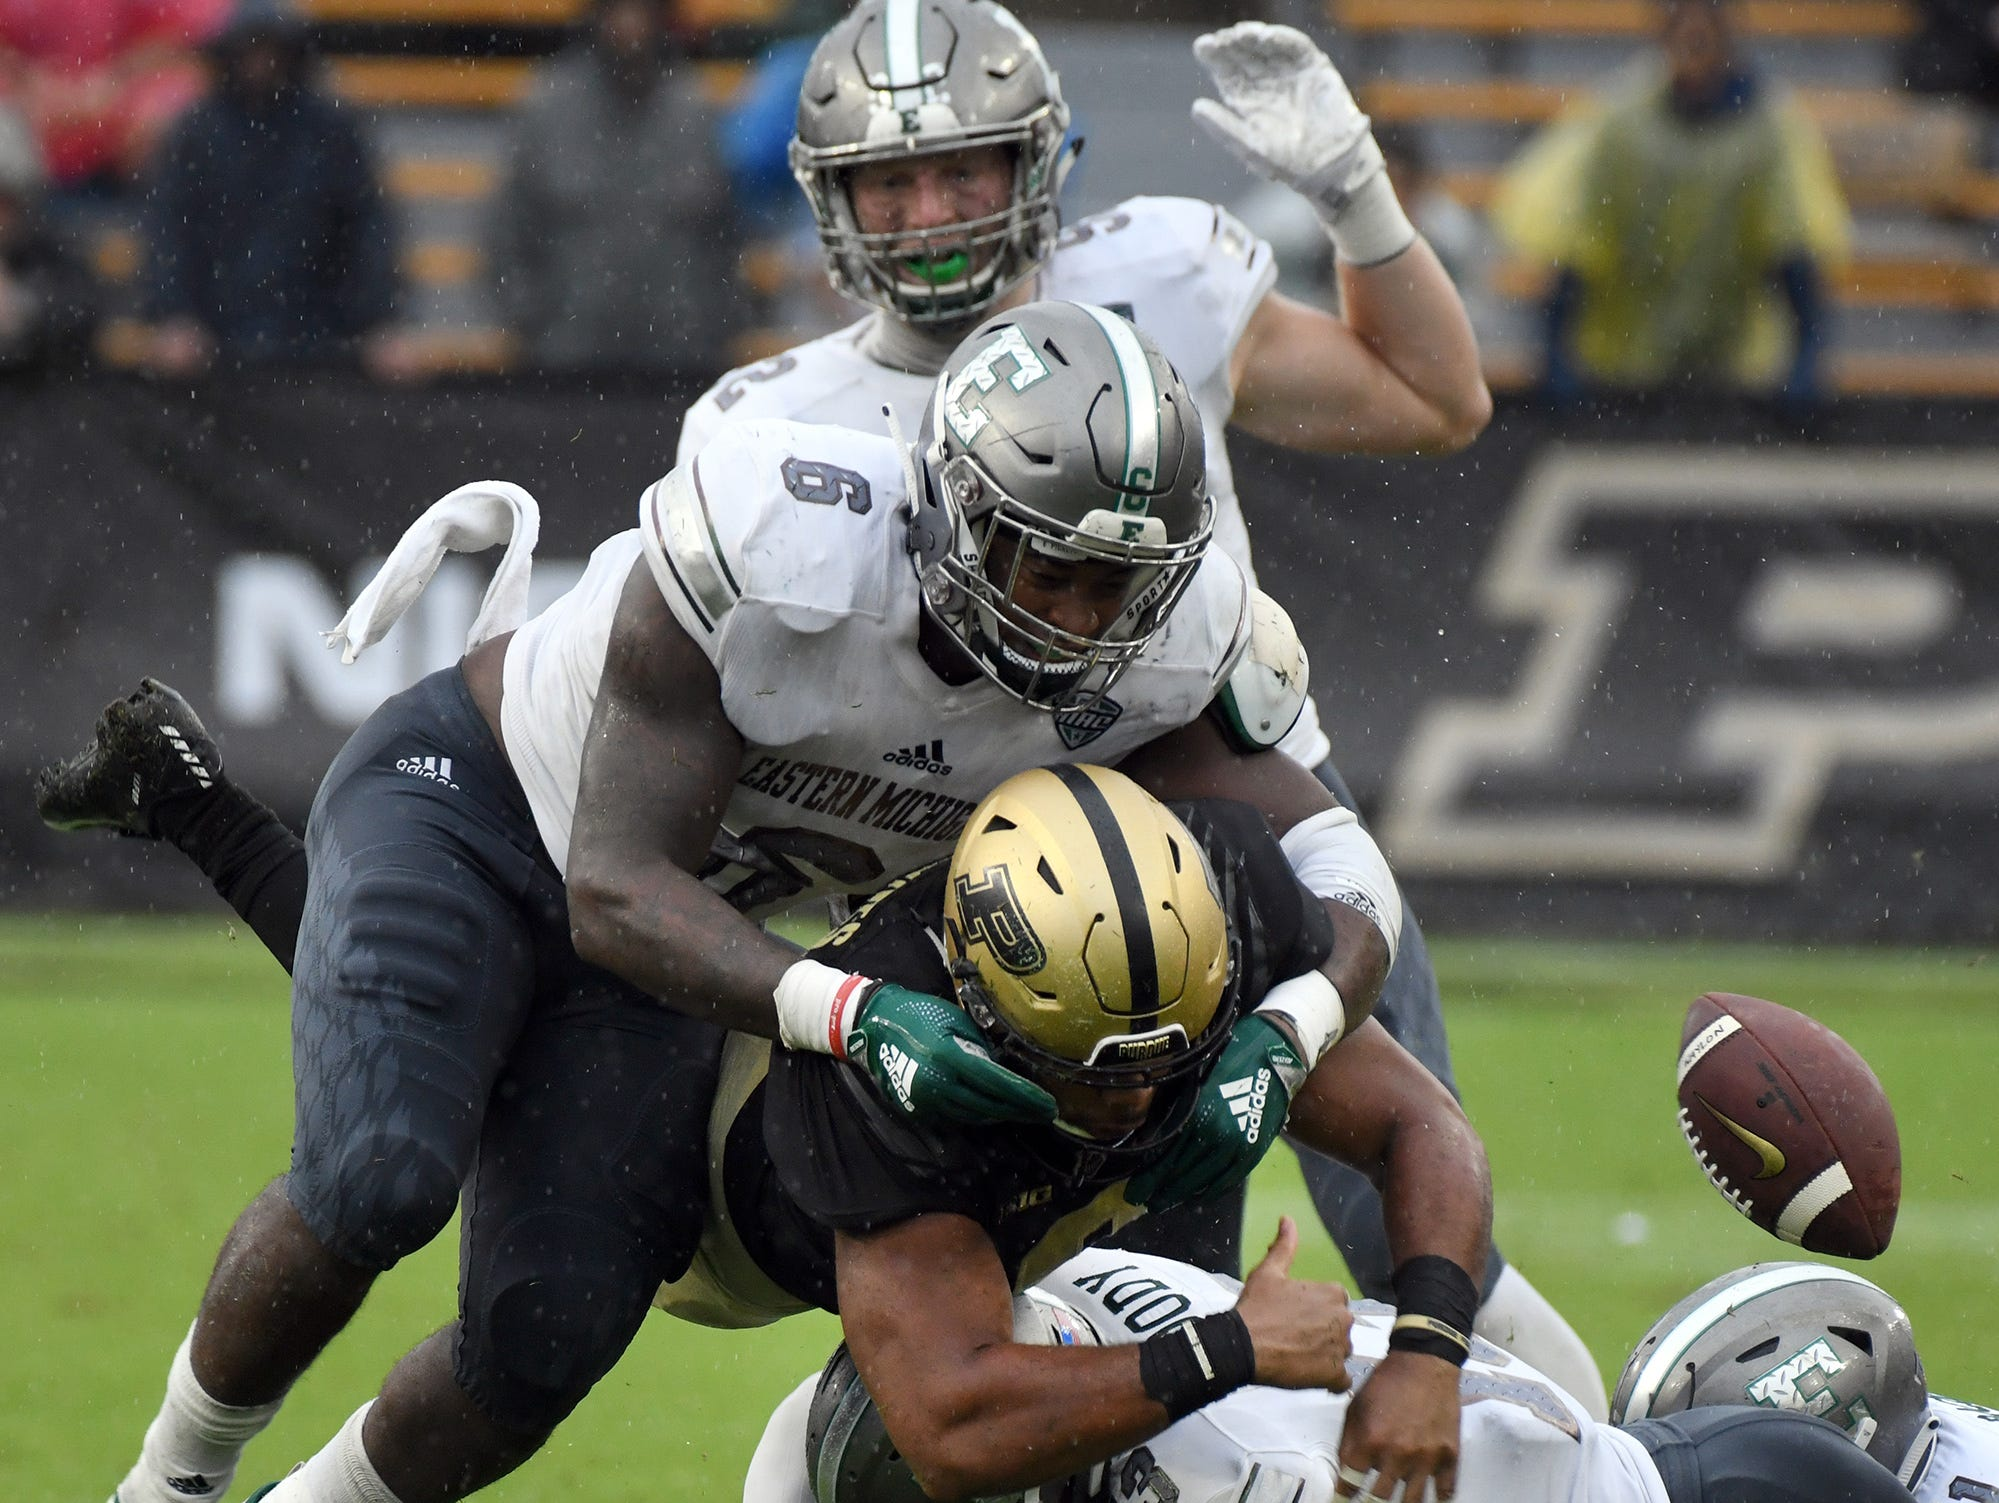 Purdue's Markell Jones fumbles against Eastern Michigan in West Lafayette on September 8, 2018. Purdue lost 20-19.